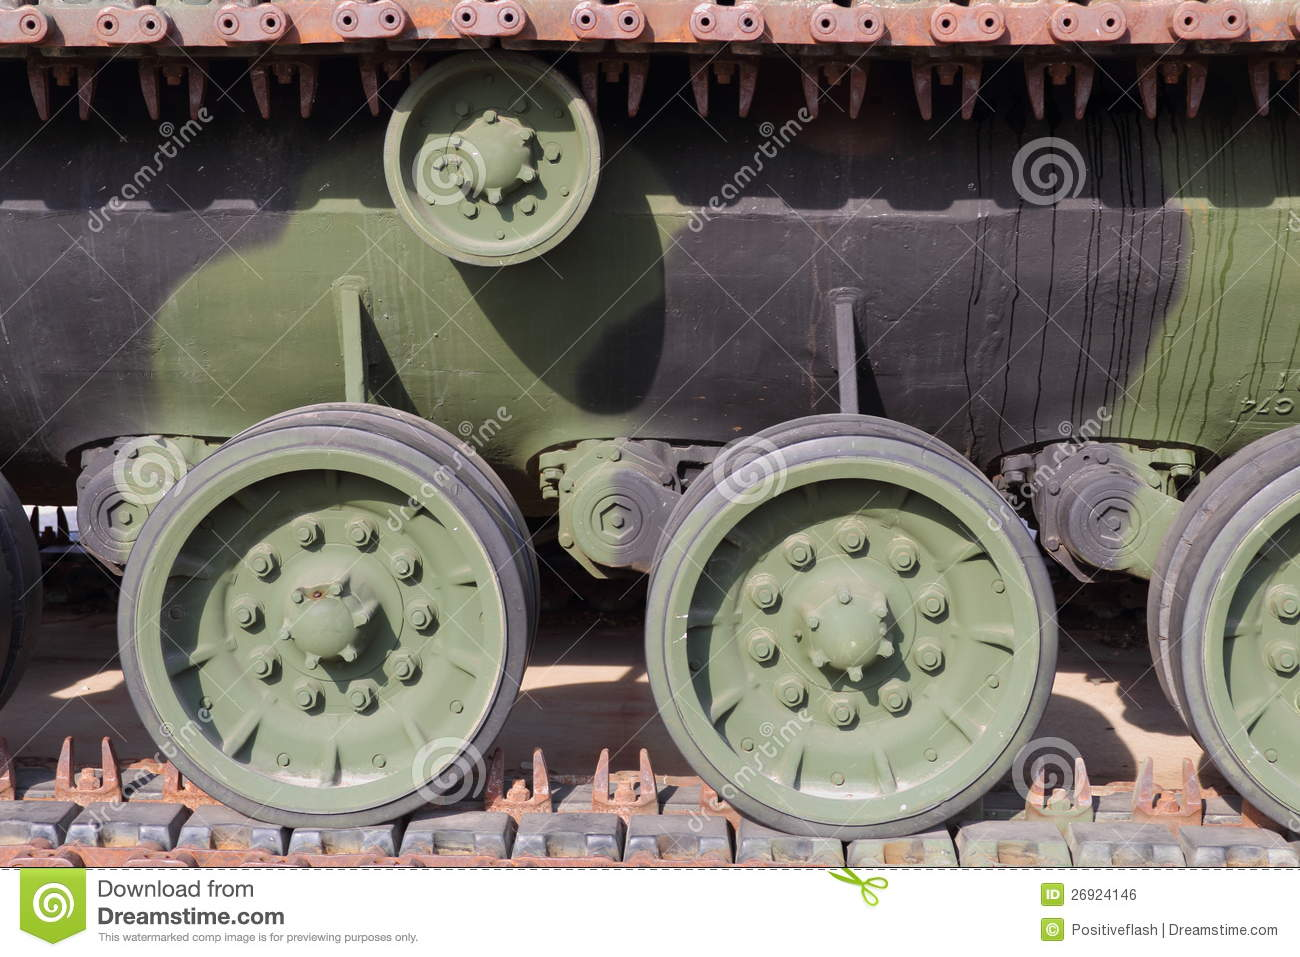 View of tank tracks and associated drive wheels mr no pr no 0 720 0